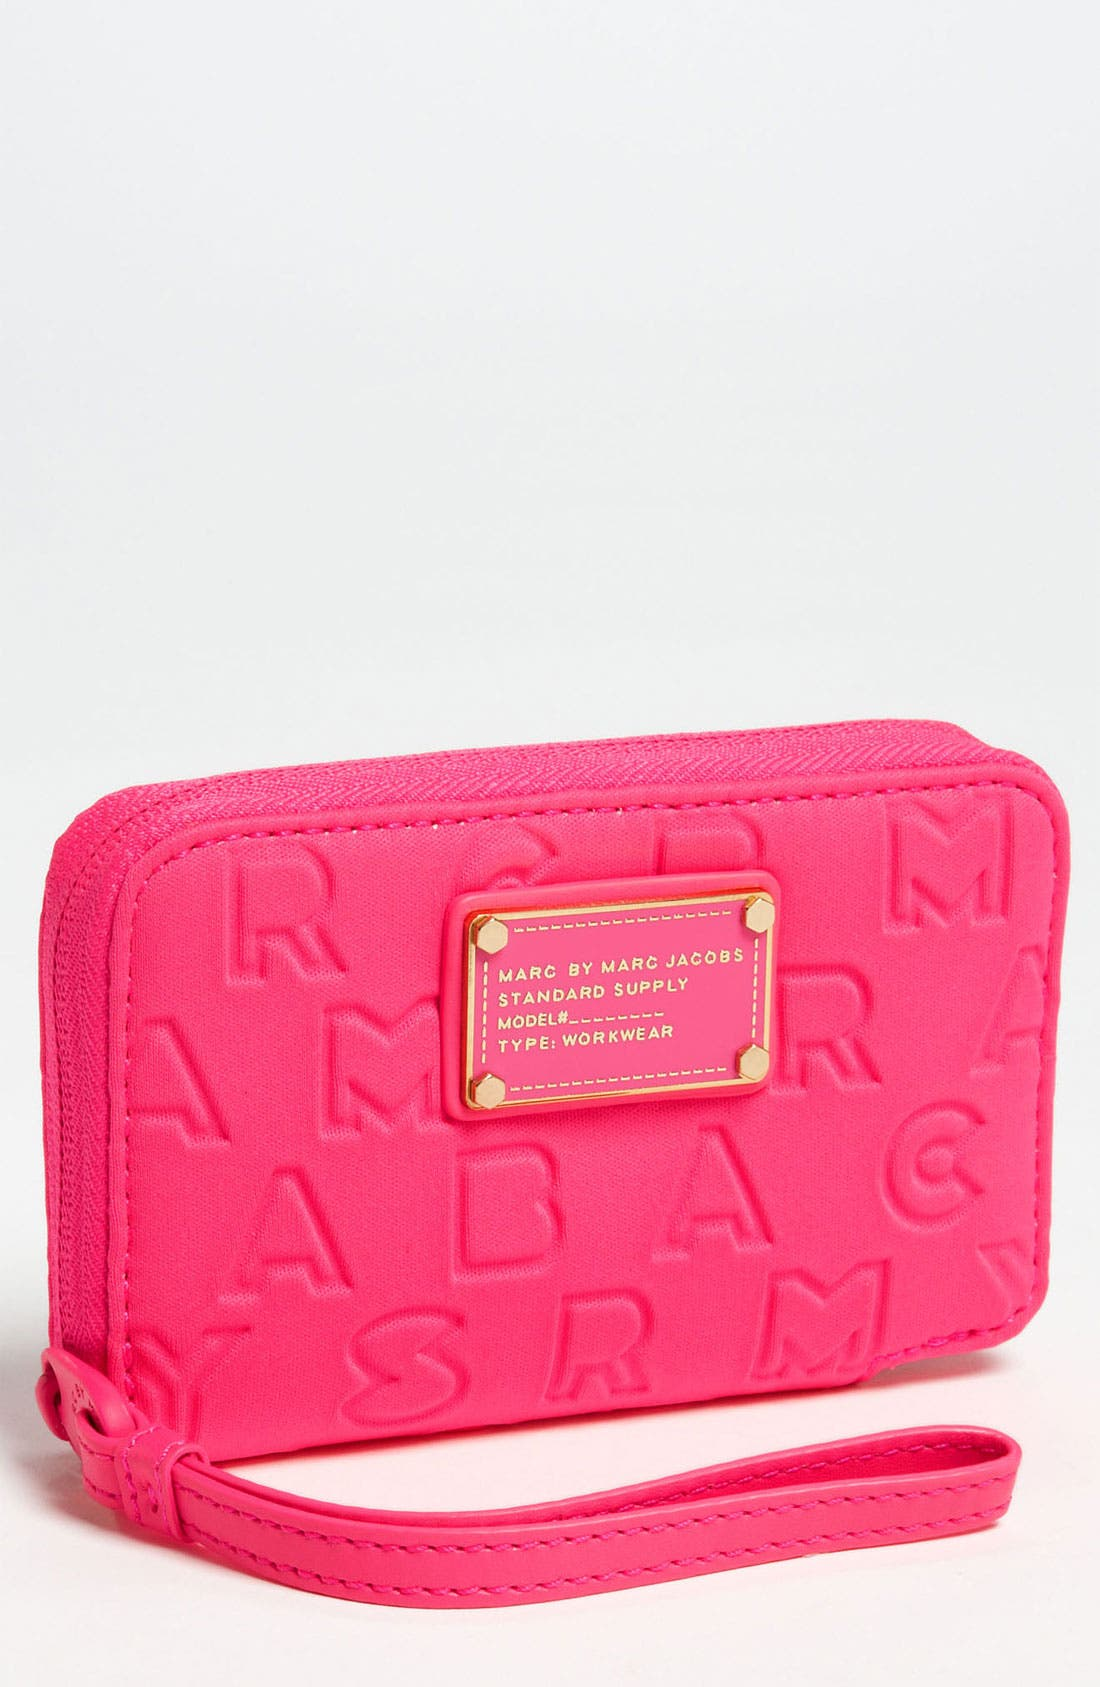 Alternate Image 1 Selected - MARC BY MARC JACOBS 'Dreamy Logo - Wingman' Phone Wallet